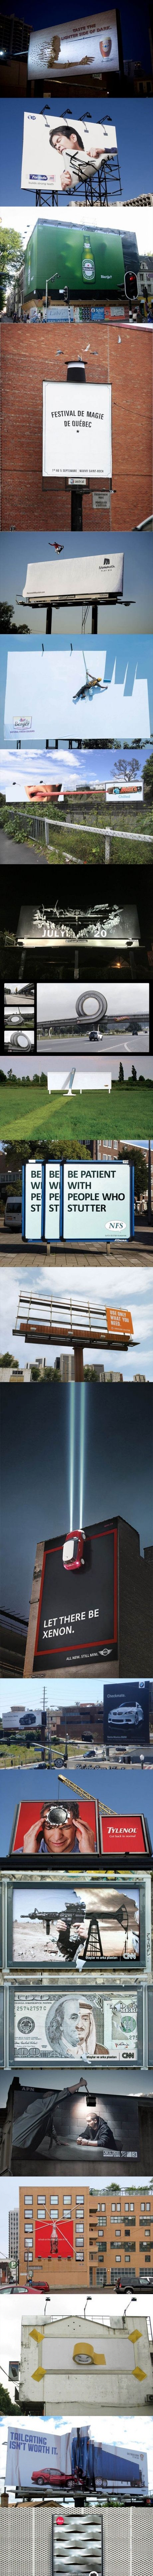 I love creative advertising